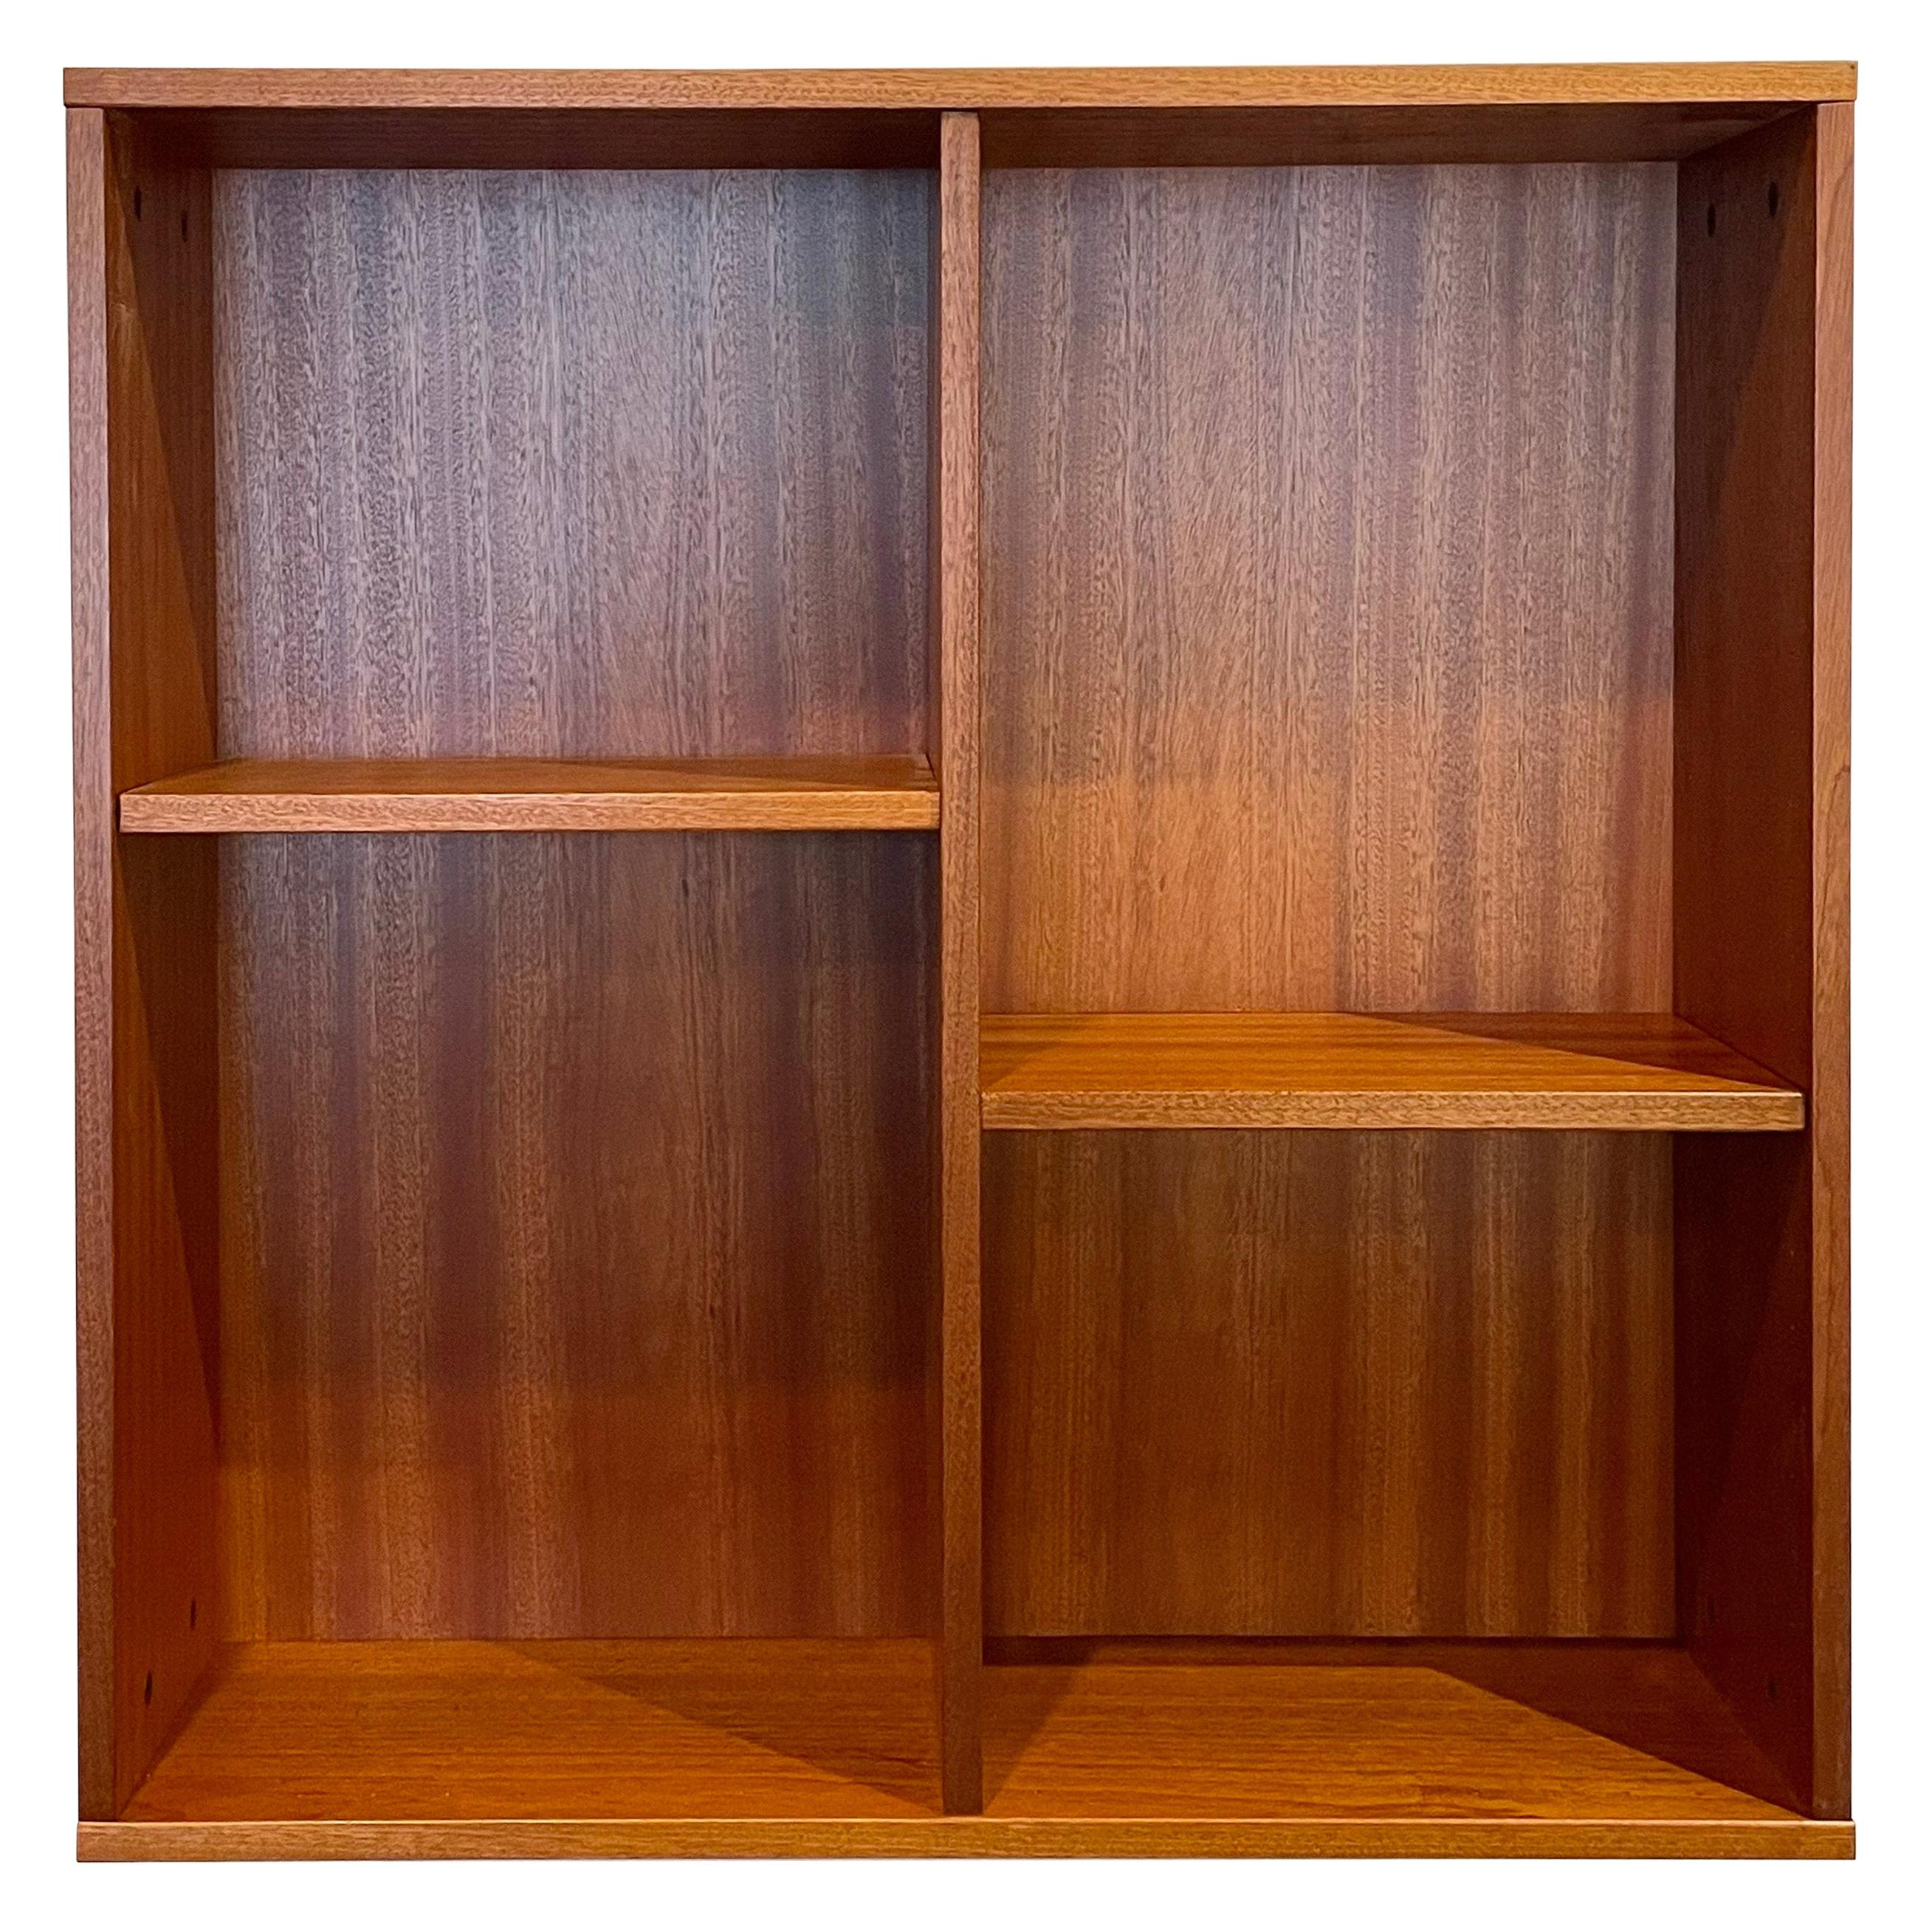 Danish Modern Teak wall Hanging Cabinet with Removable Shelves